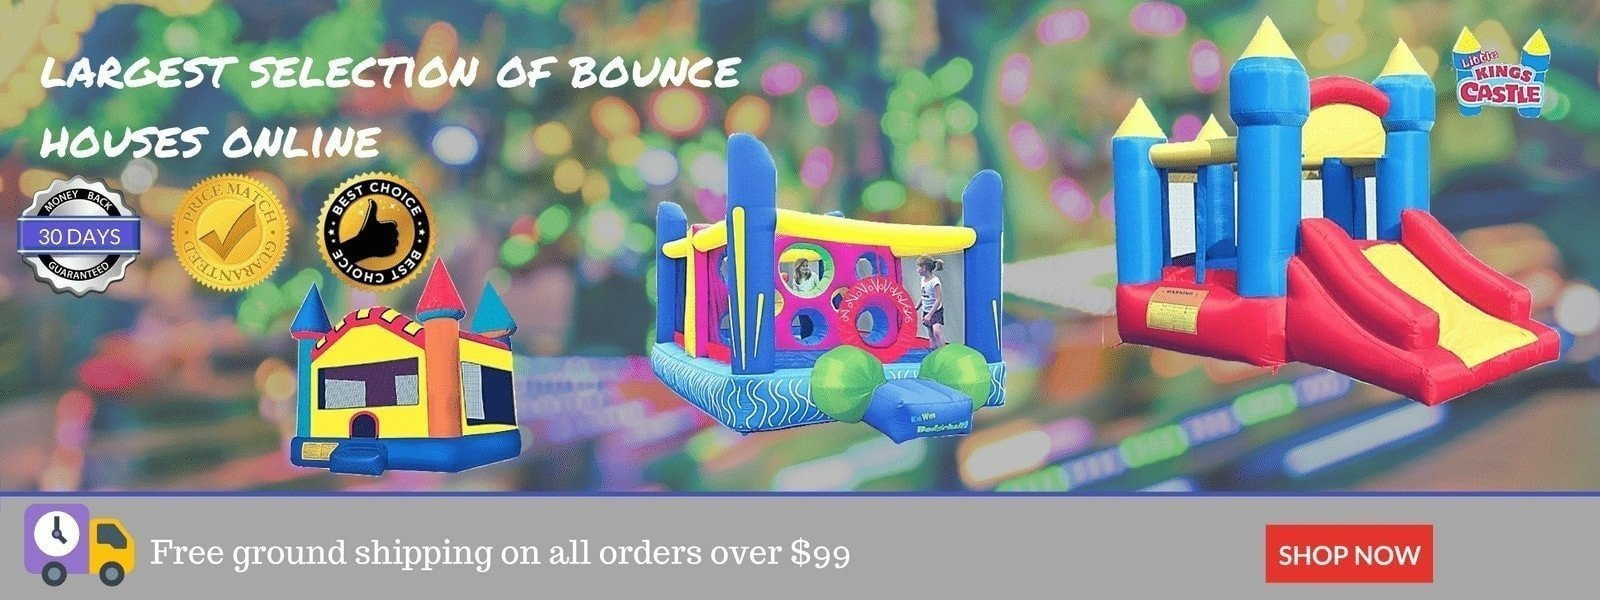 Bounce Houses For Sale - The Bounce House Store